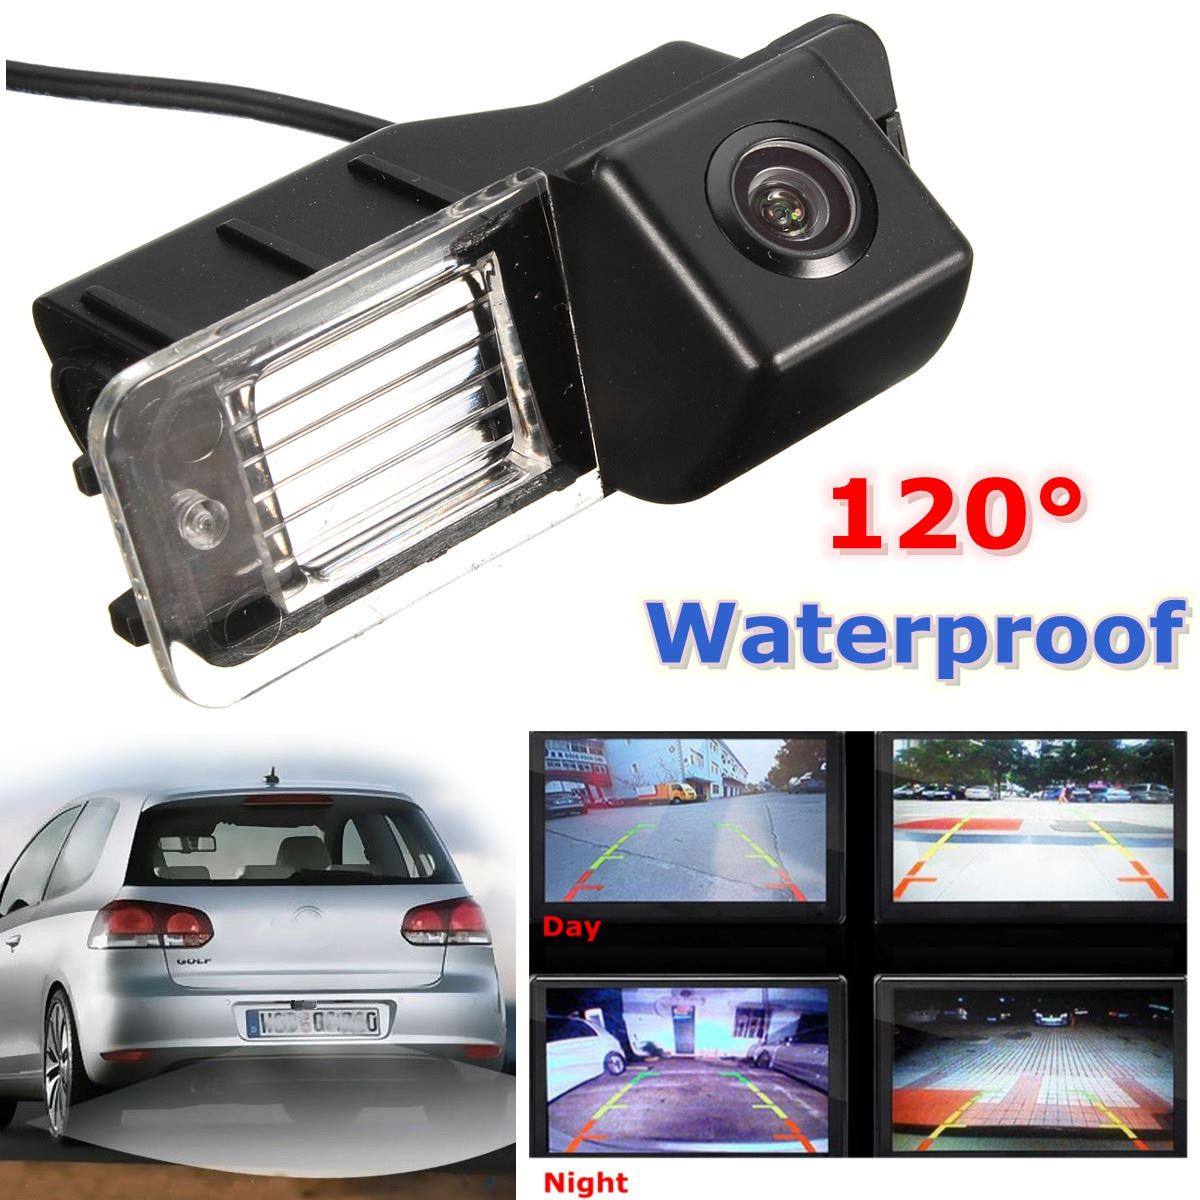 CCD HD Car Reverse Camera Rear View Cameras Parking Backup Night Vision Waterproof For VW Golf MK6 MK7 GTI Polo V (6R) Passat CC